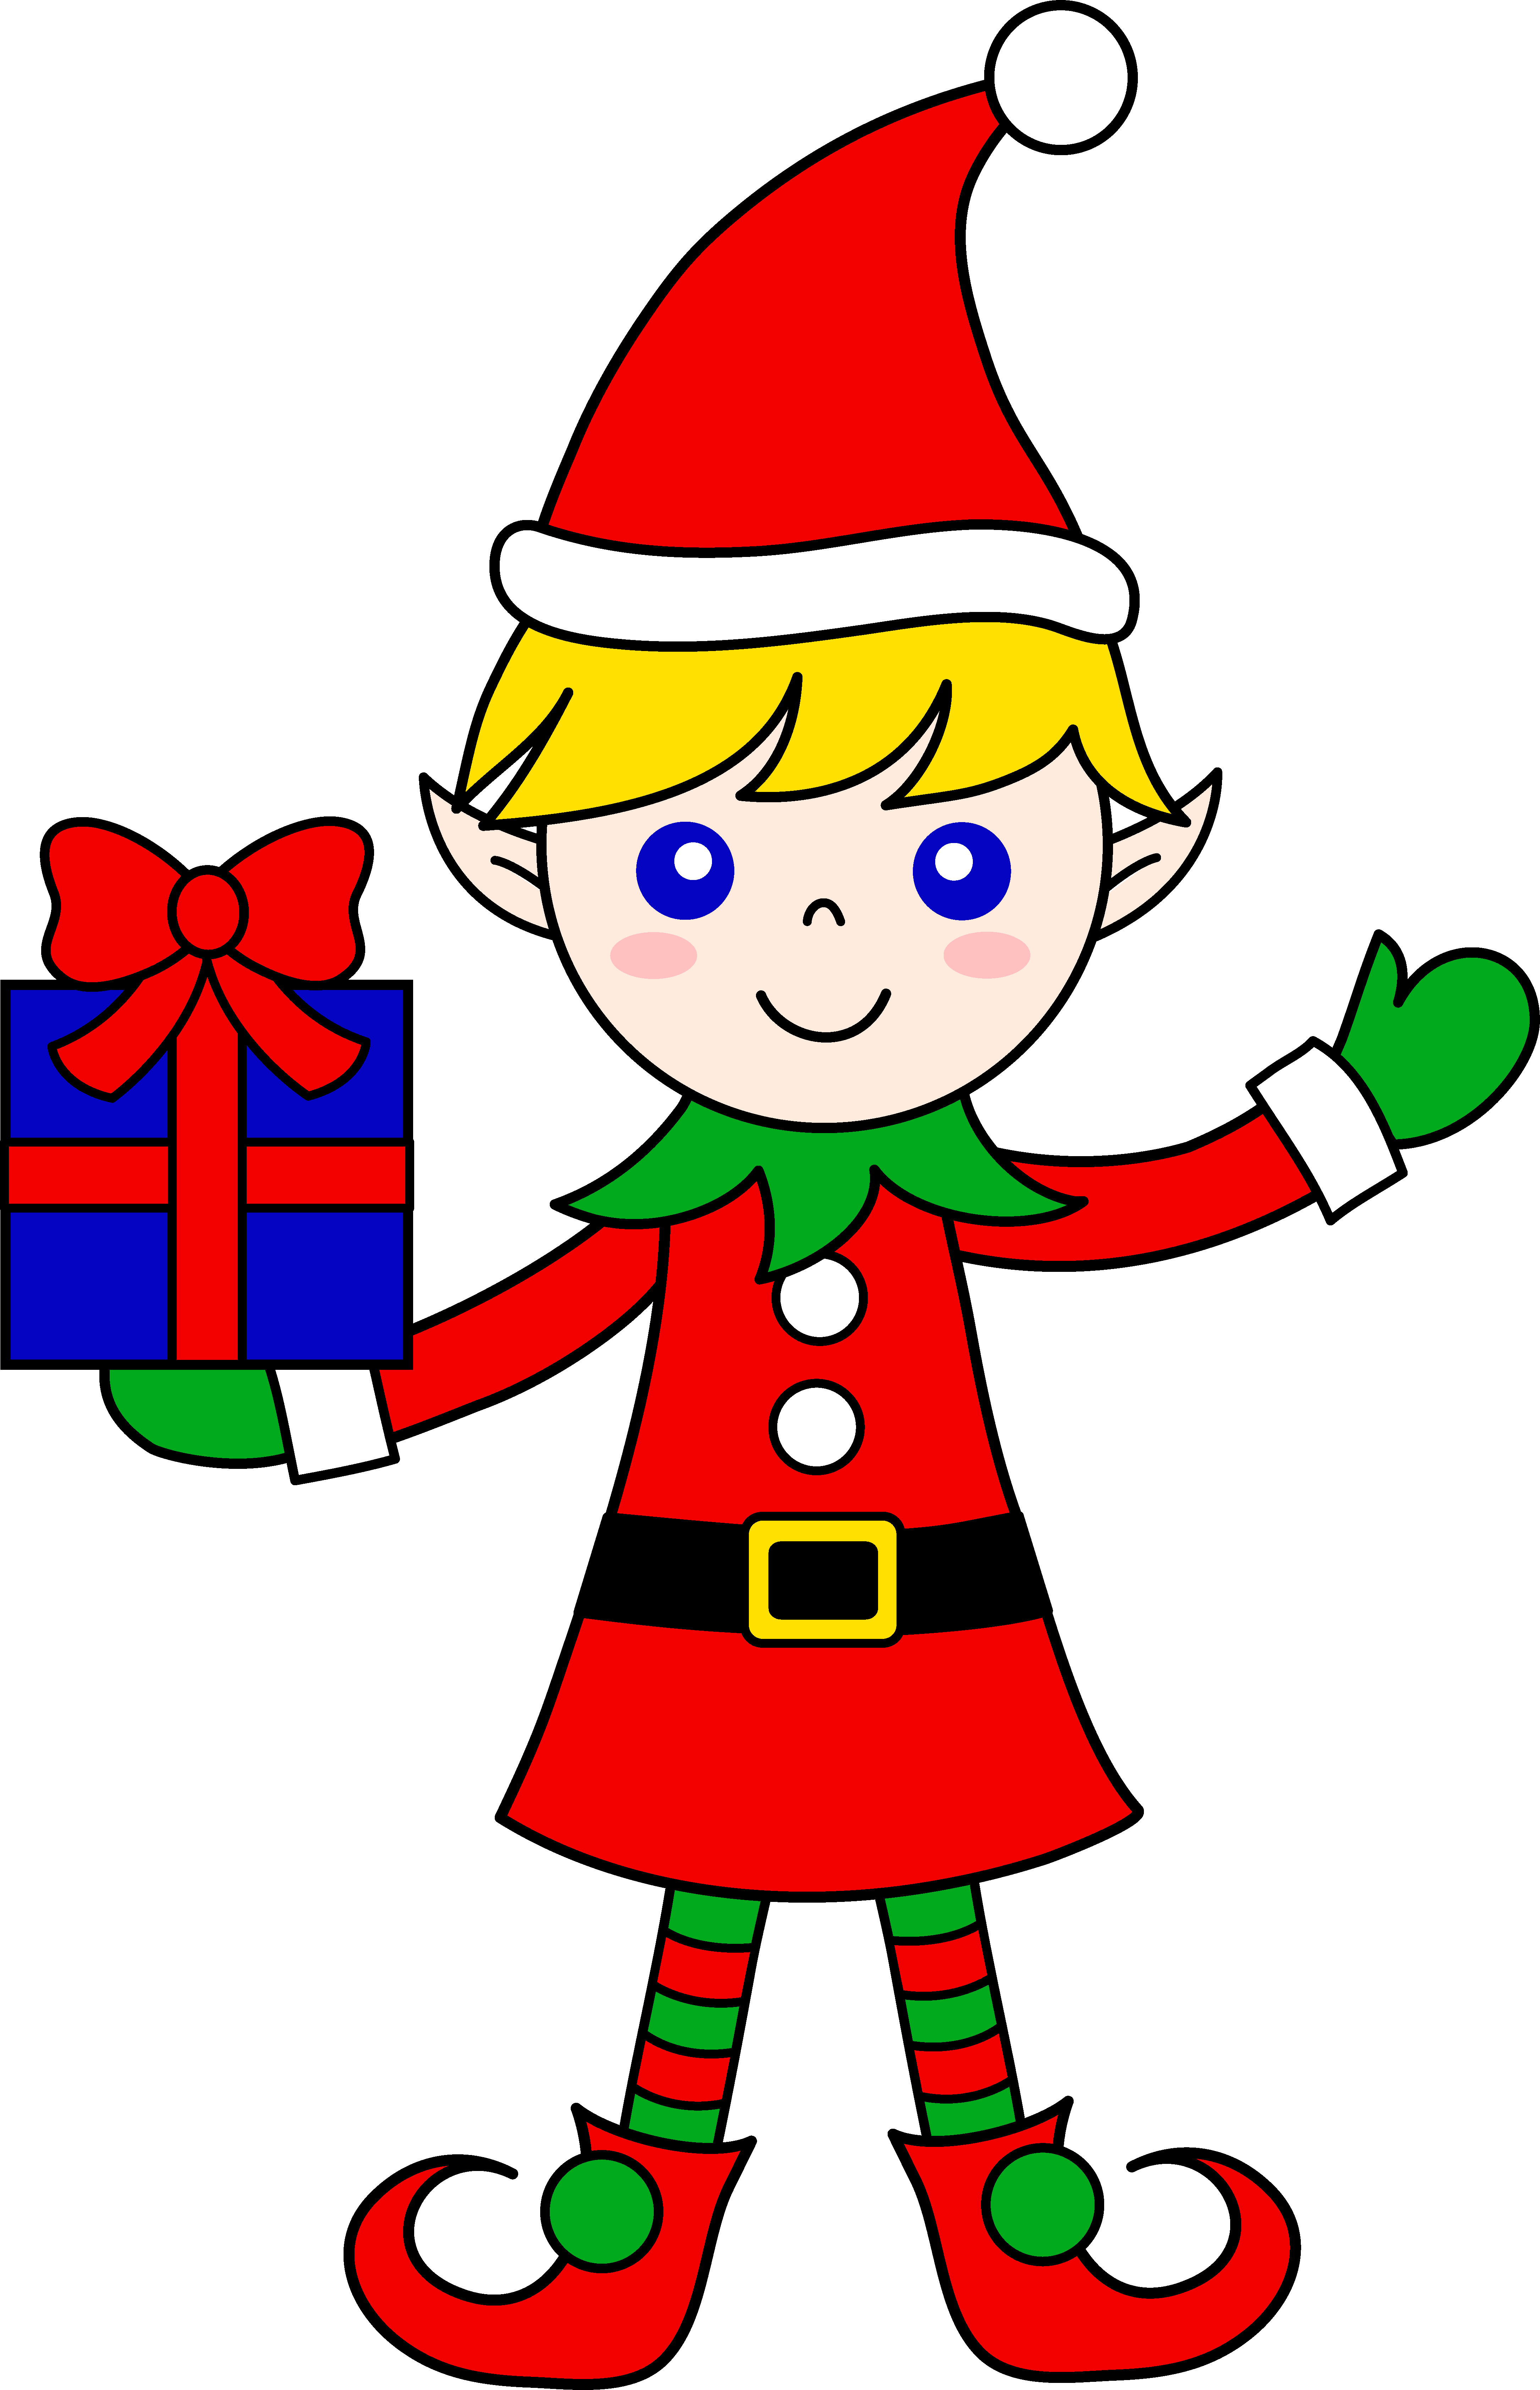 Christmas elf clipart black and white png transparent library 28+ Collection of Santa And Elf Clipart | High quality, free ... png transparent library